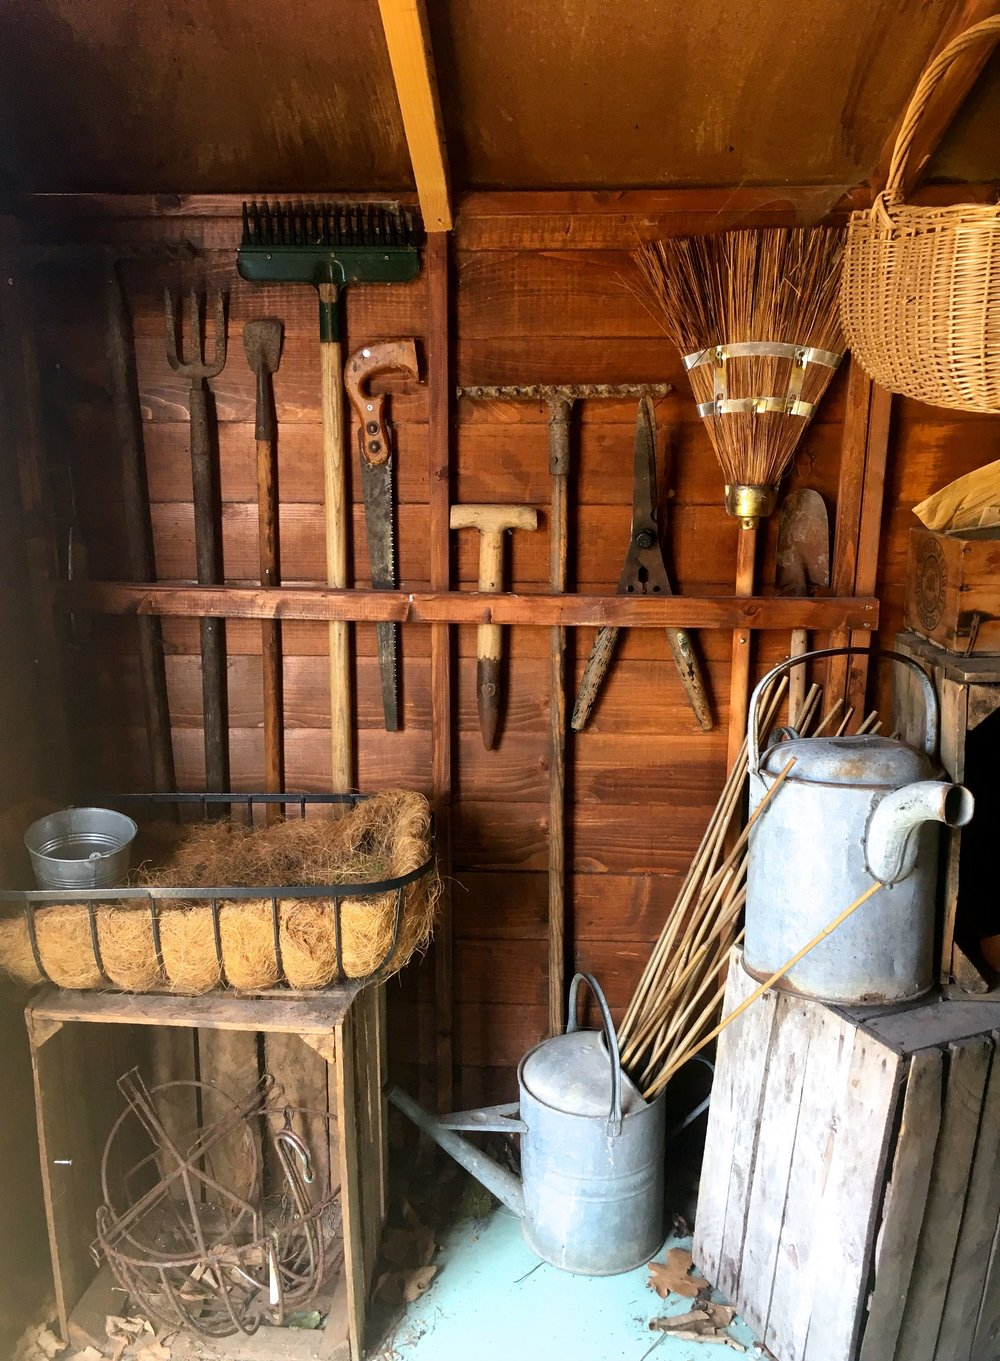 Garden tools close at hand and neatly stored